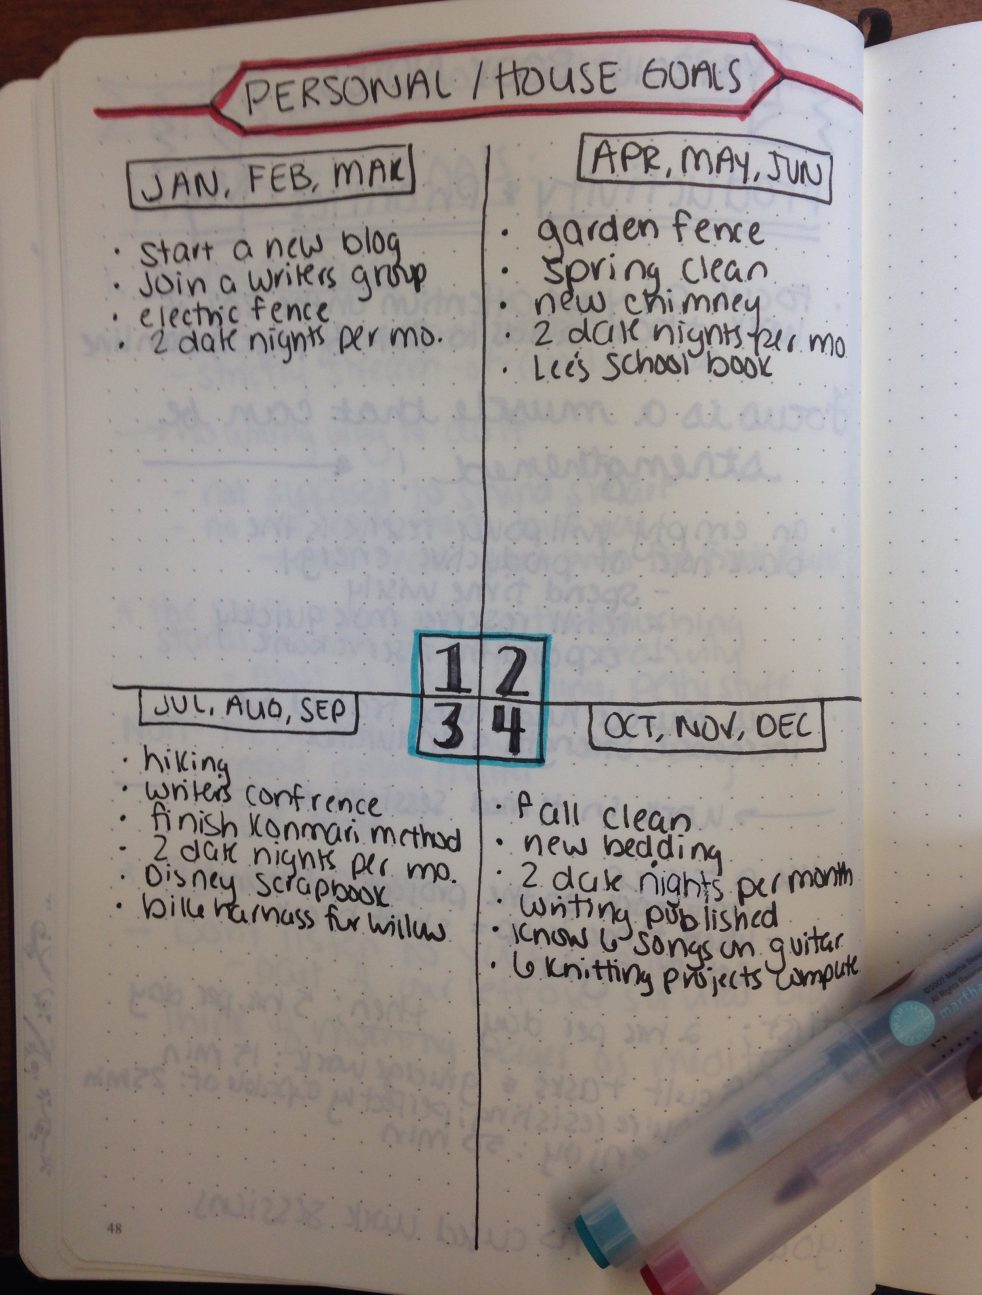 Organize Those Goals and Create Actionable Steps